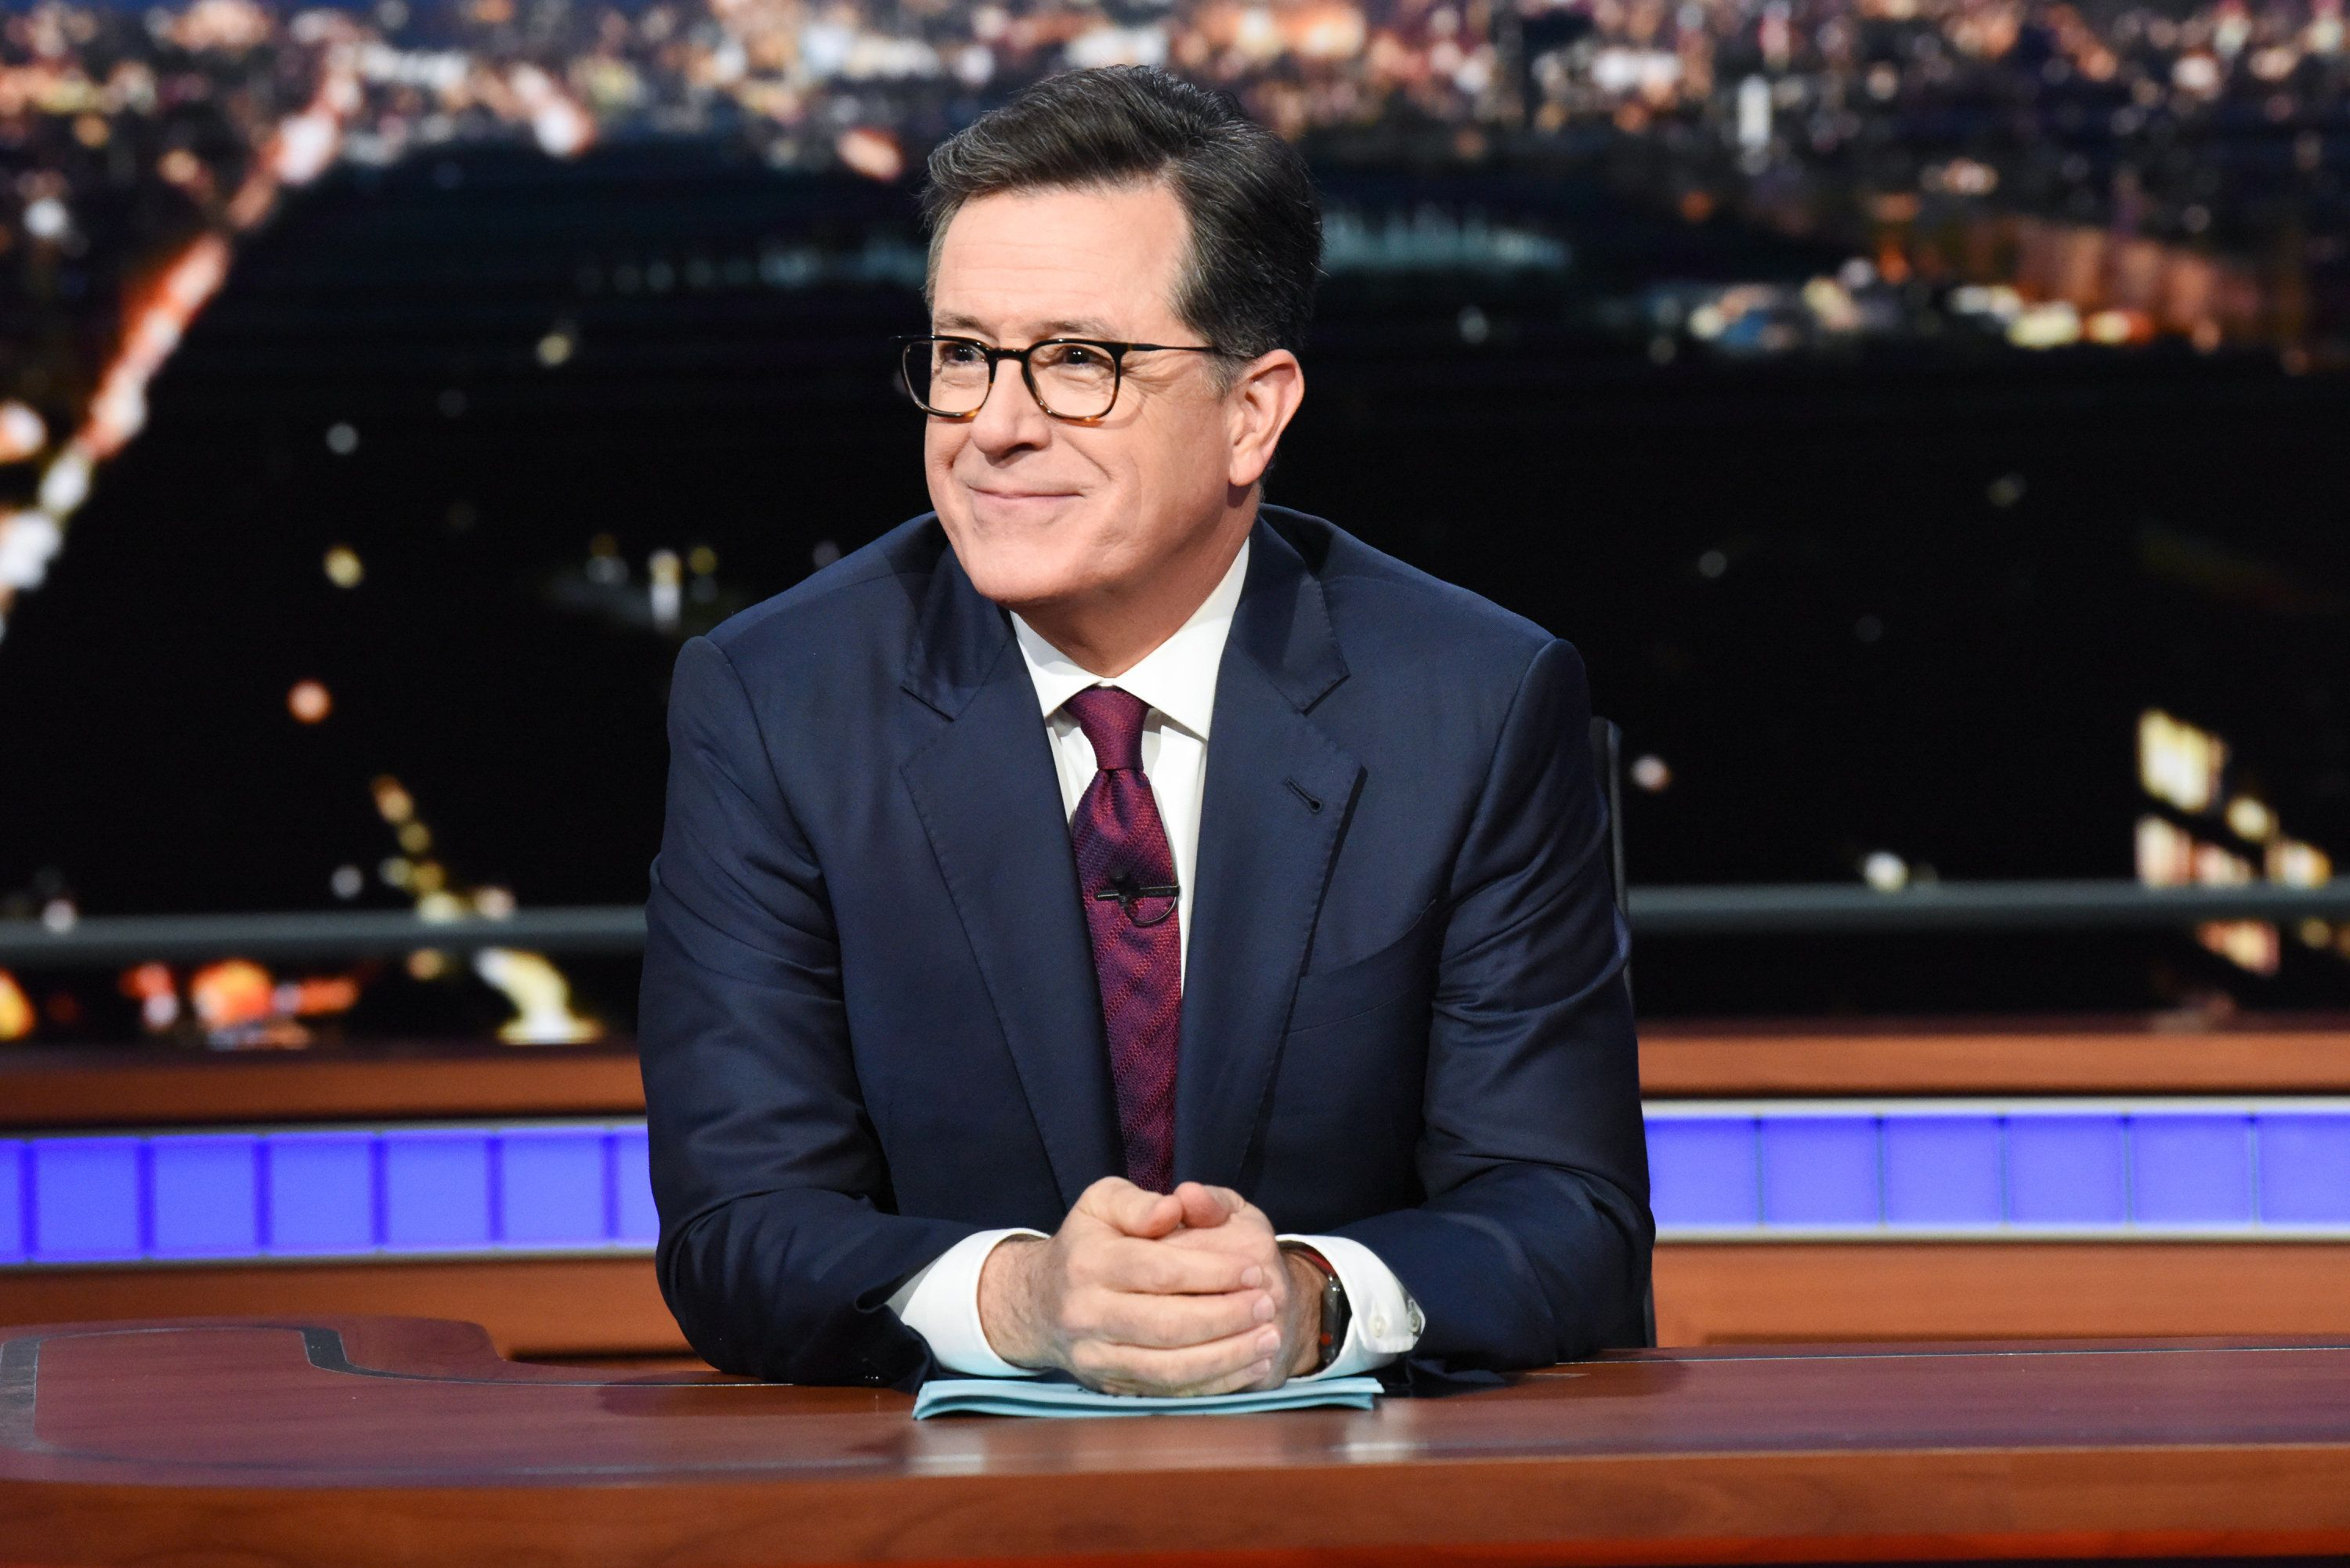 Even Stephen Colbert Lives With Anxiety. Here's How He Deals With